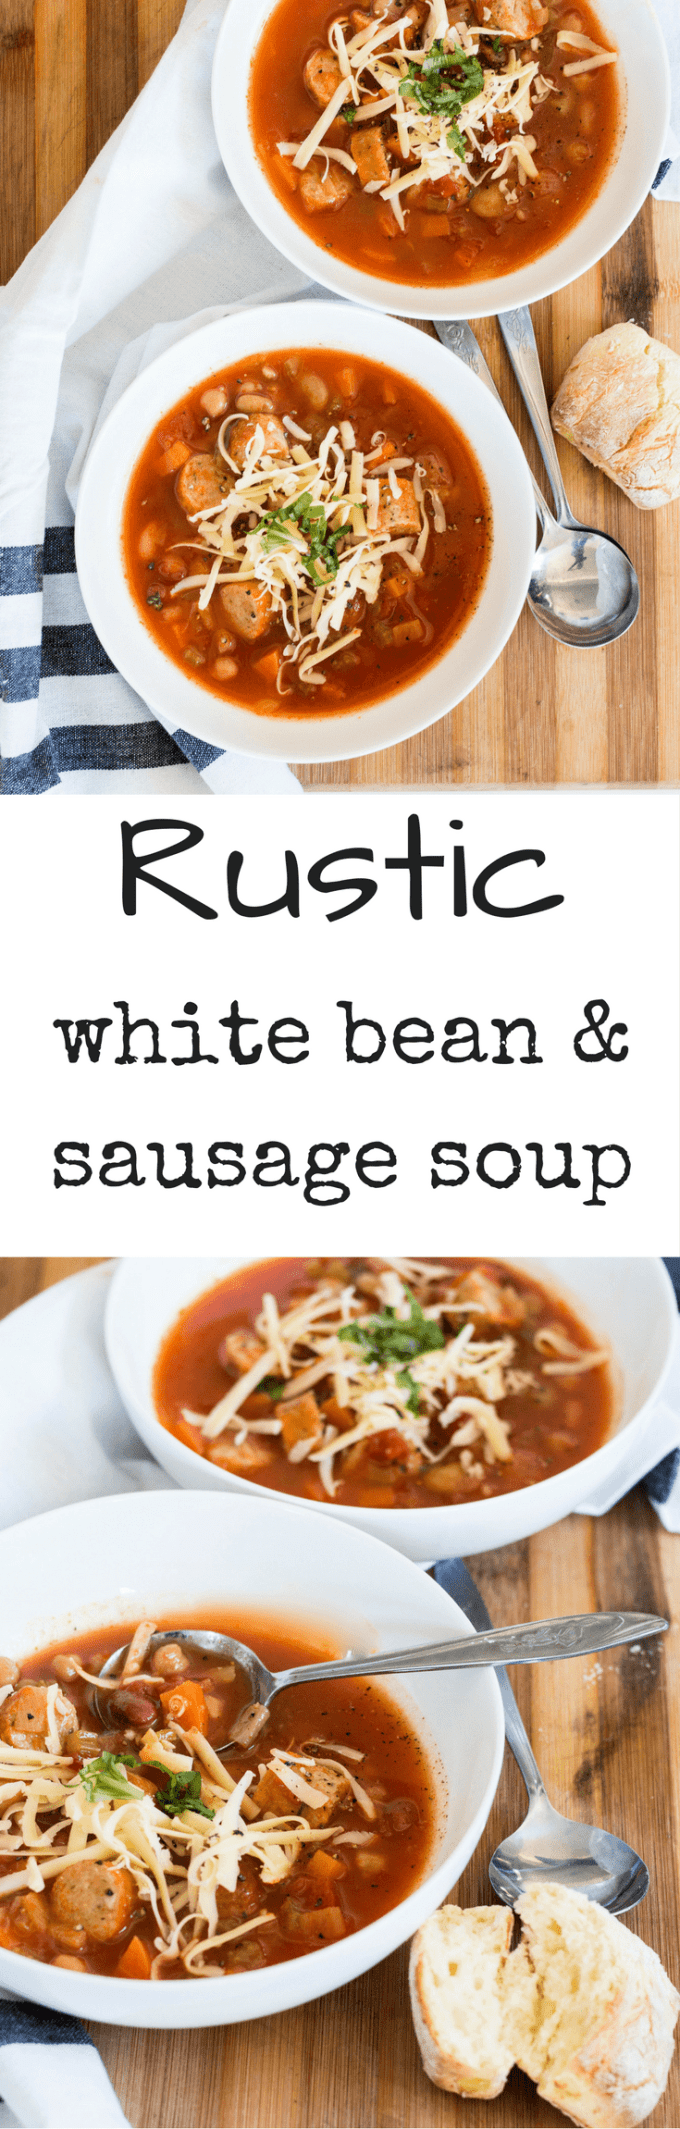 White Bean and Sausage Soup is rustic, hearty and filling and is the perfect accompaniment to a cold and rainy day.